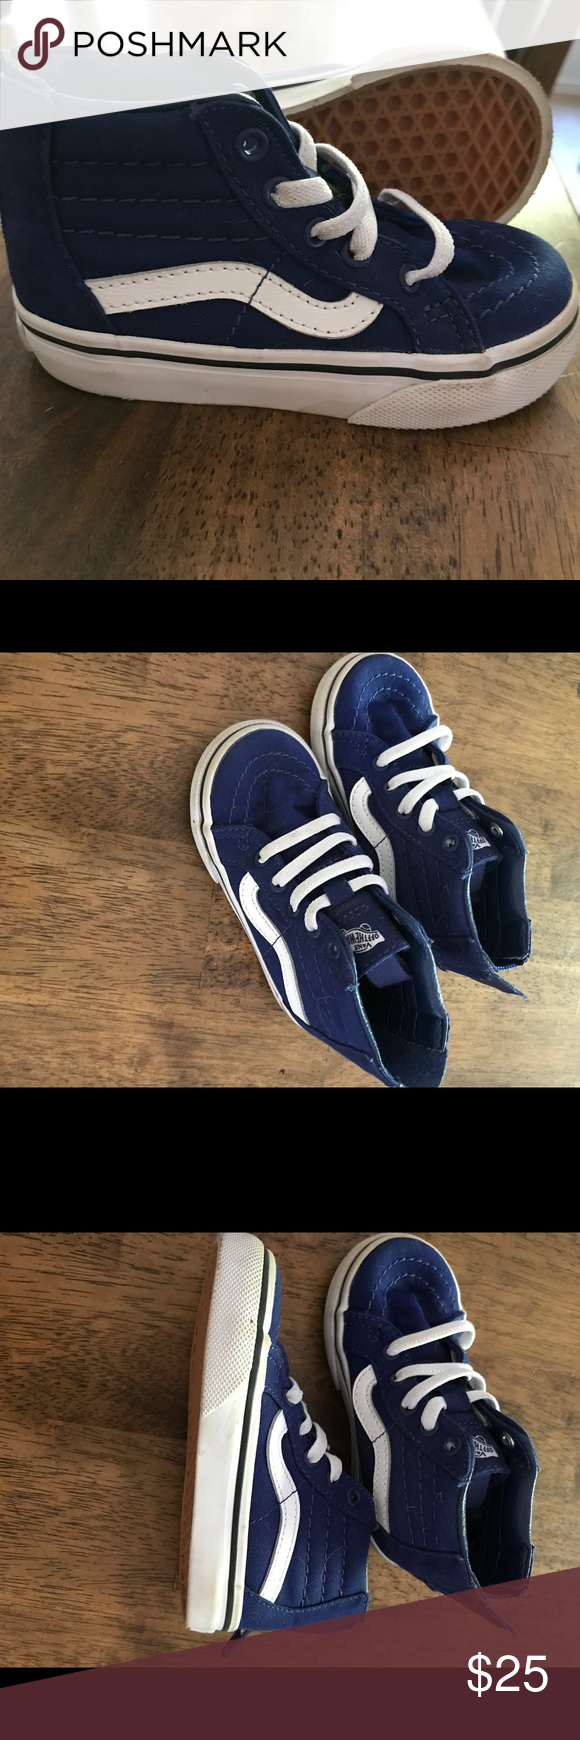 f34b7a31f7 Toddler Vans Toddler Vans off the wall hi tops zip closure on the back faux  laces on the front EUC Almost new